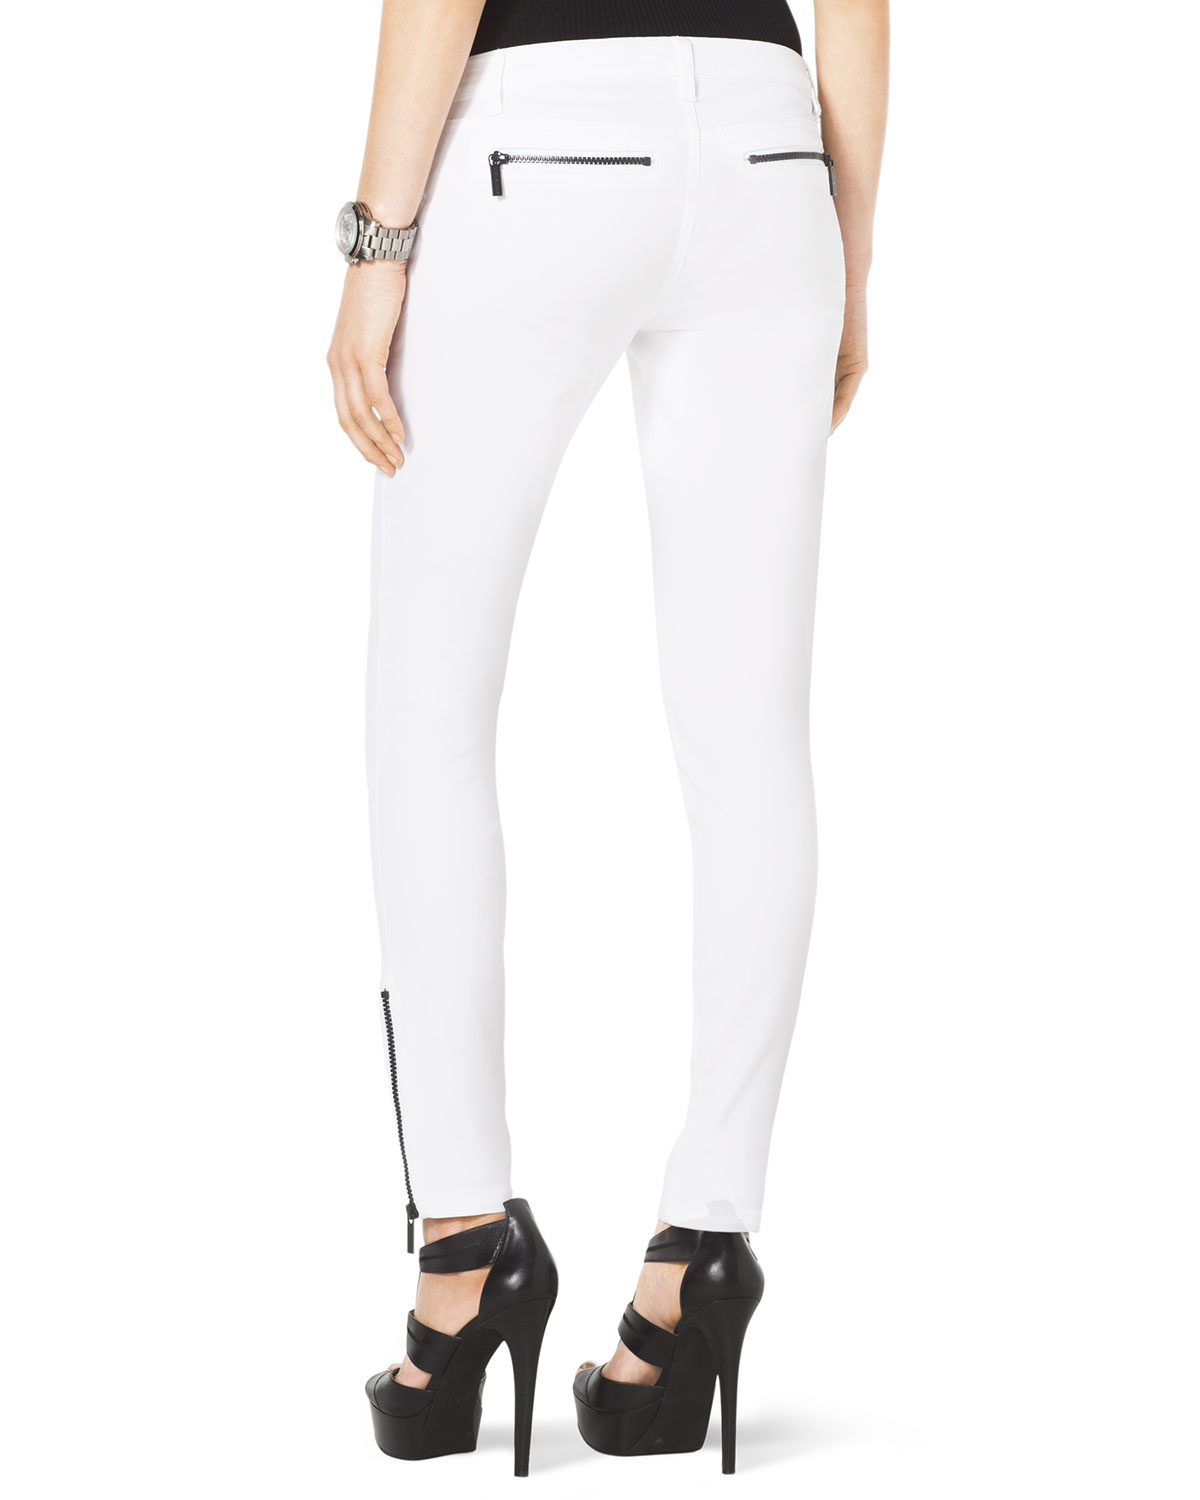 Michael kors Michael Skinny Ankle Zip Jeans in White | Lyst